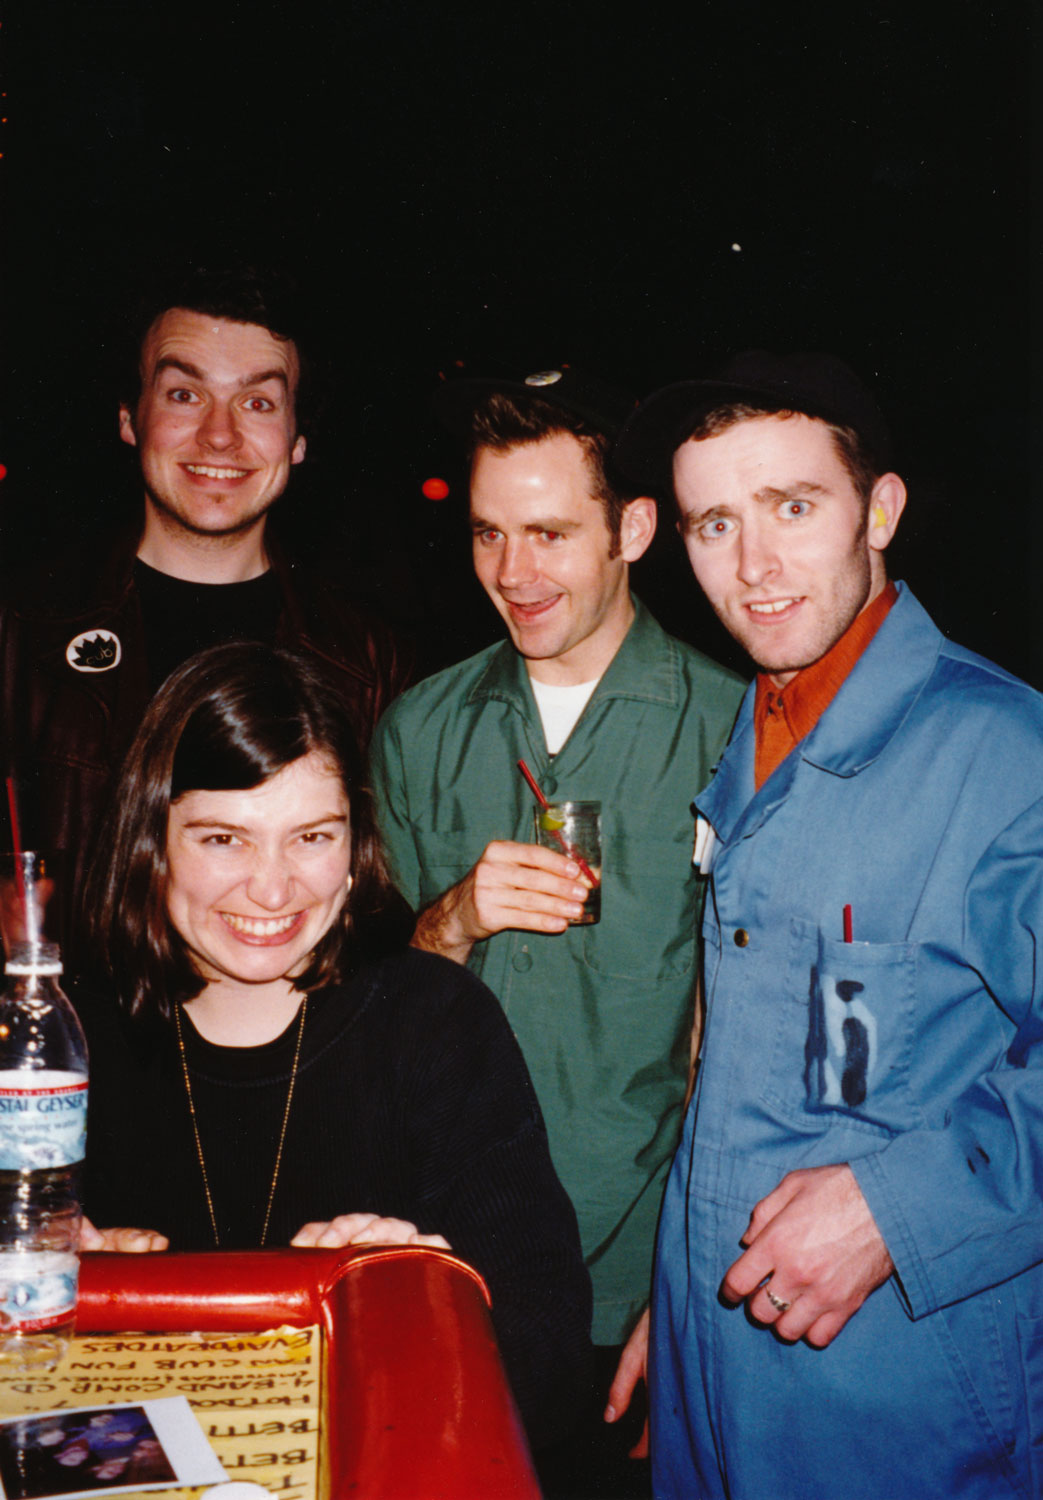 """Lisa Marr from Cub! David Carswell was playing drums for them (where was Neko?) and Grant was """"tour managing"""" while I was acting like an idiot."""